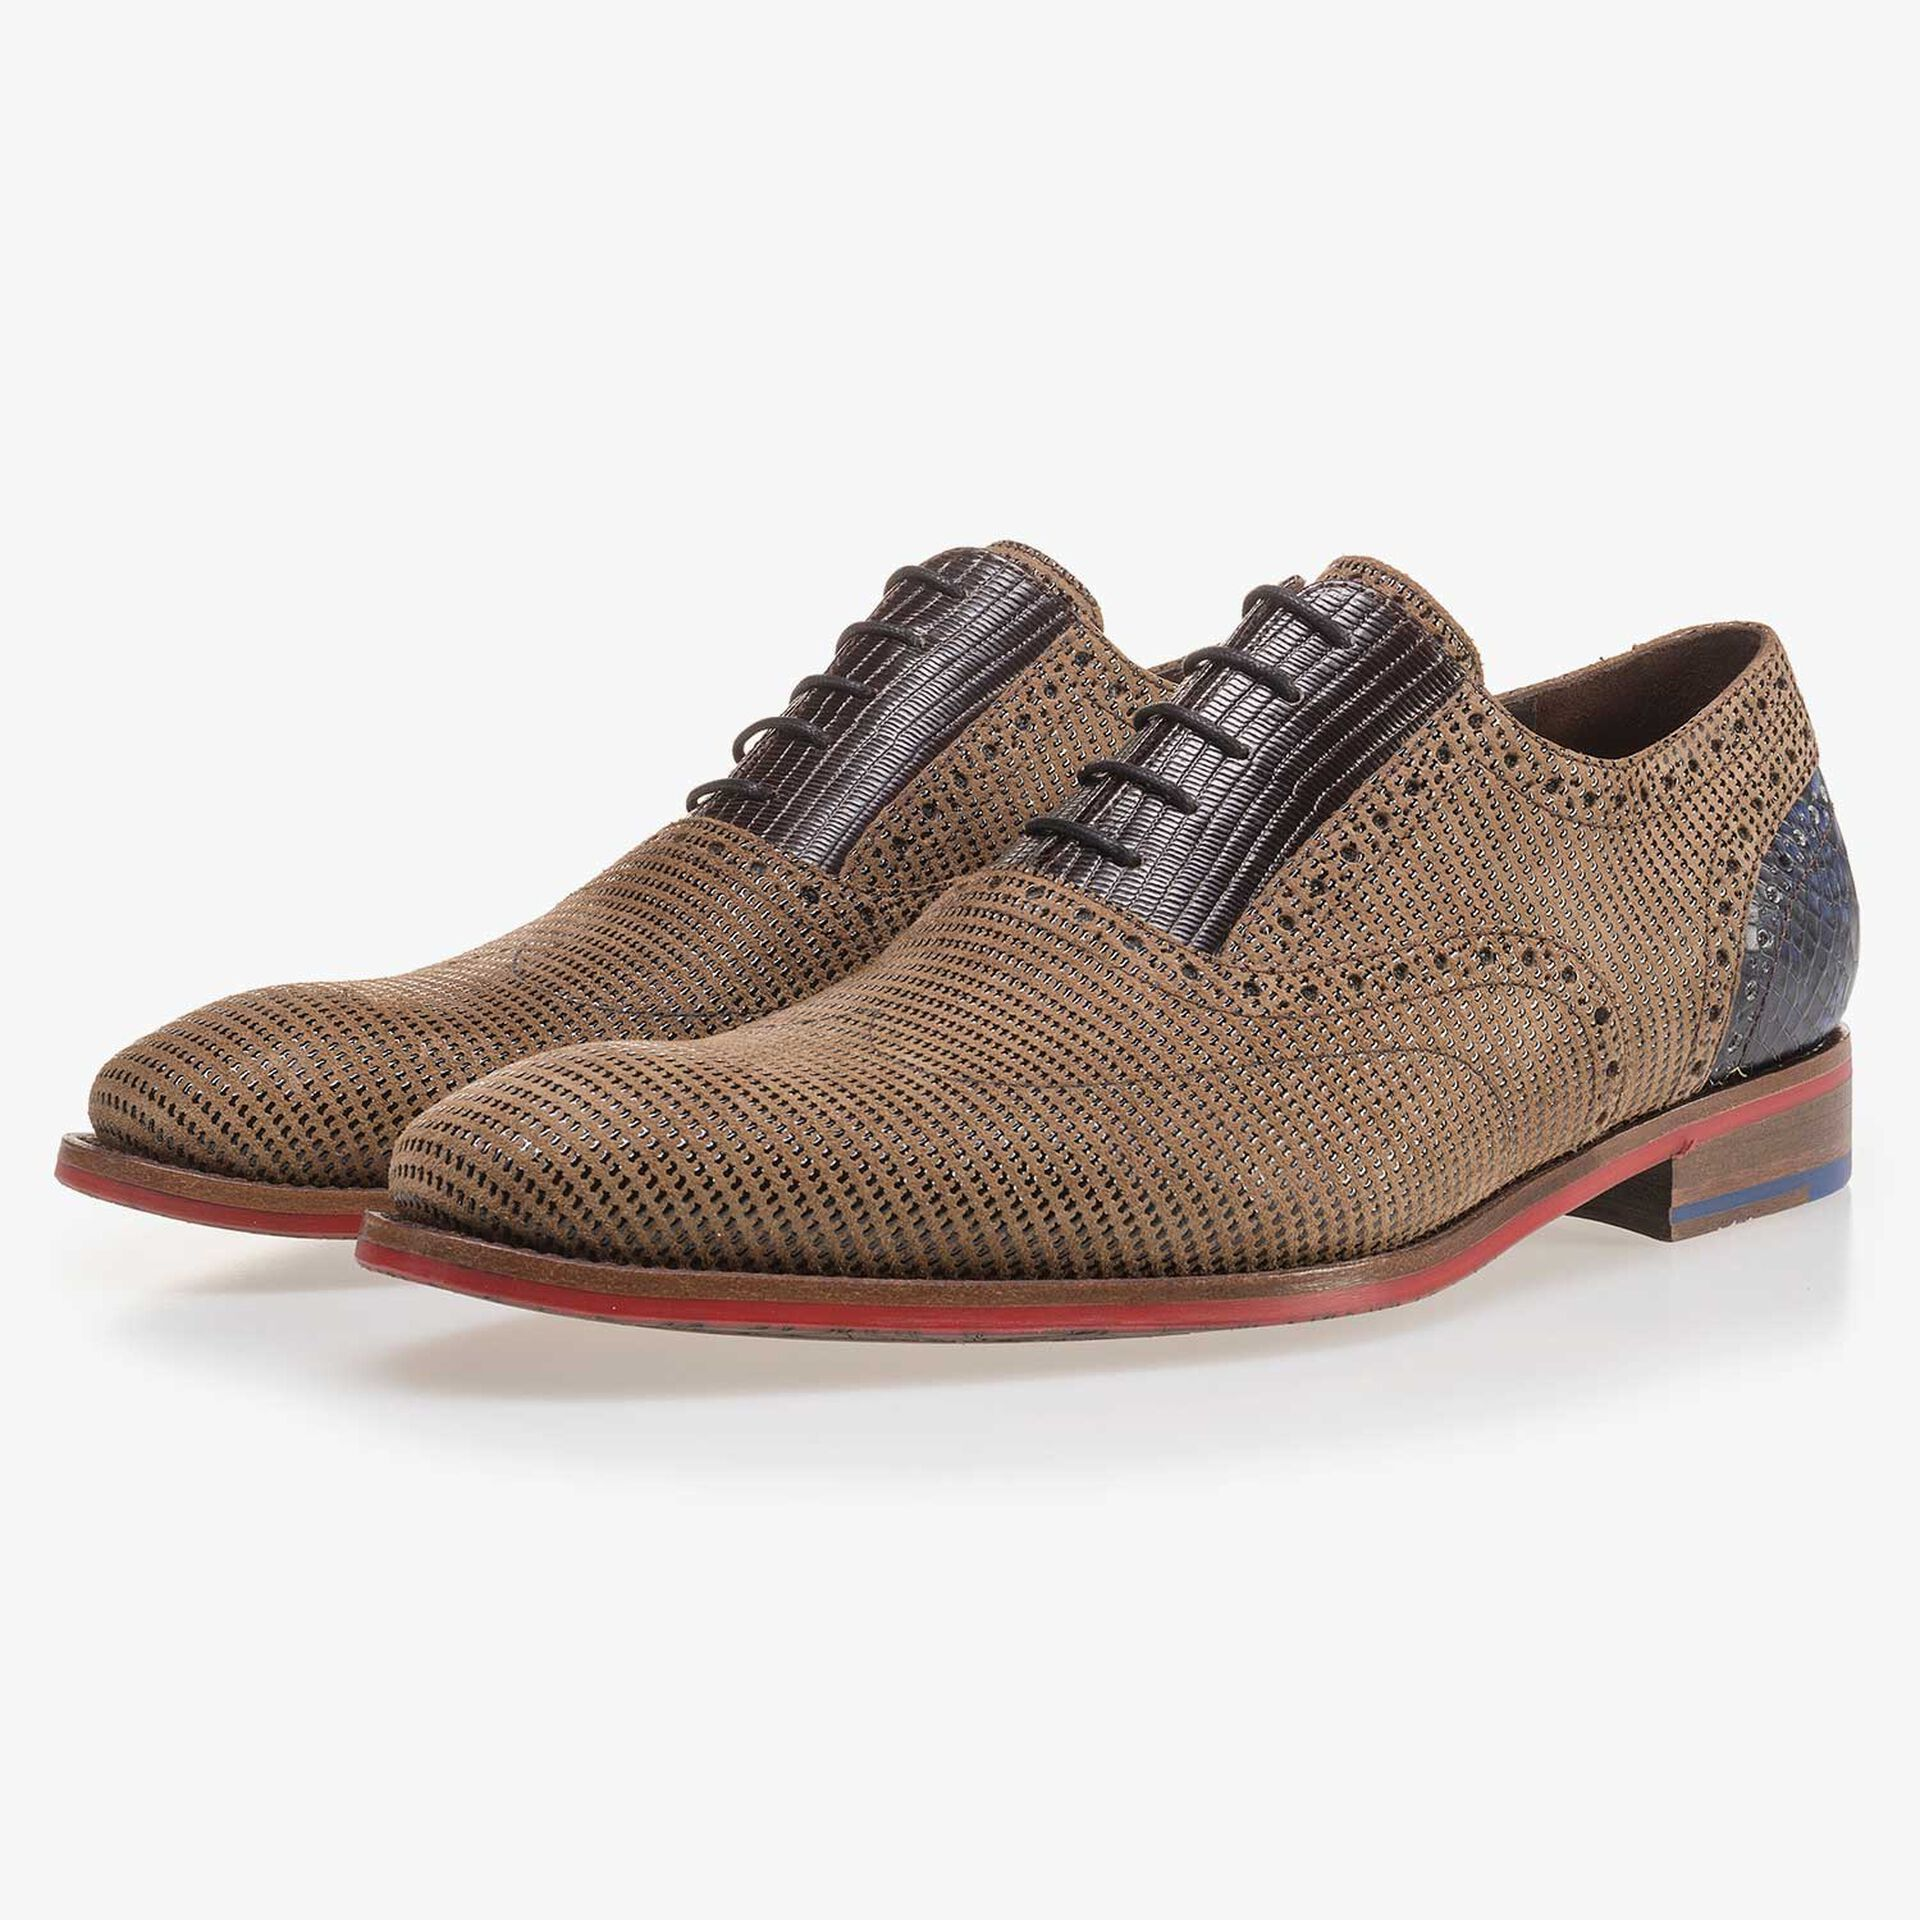 Camel-coloured suede leather lace shoe with pattern